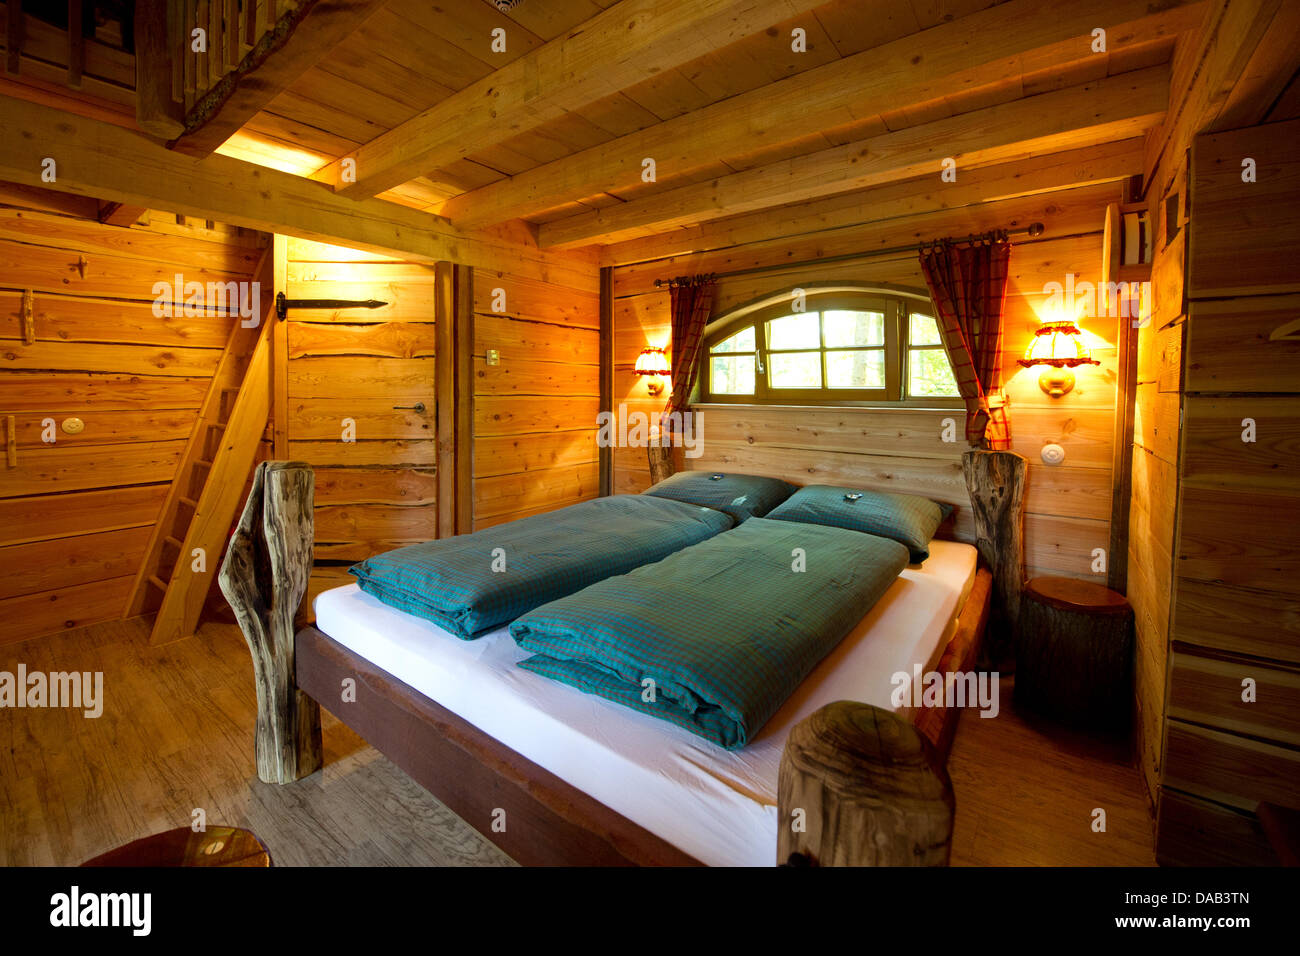 the interior of a treehouse is seen in the adventure park stock photo royalty free image. Black Bedroom Furniture Sets. Home Design Ideas